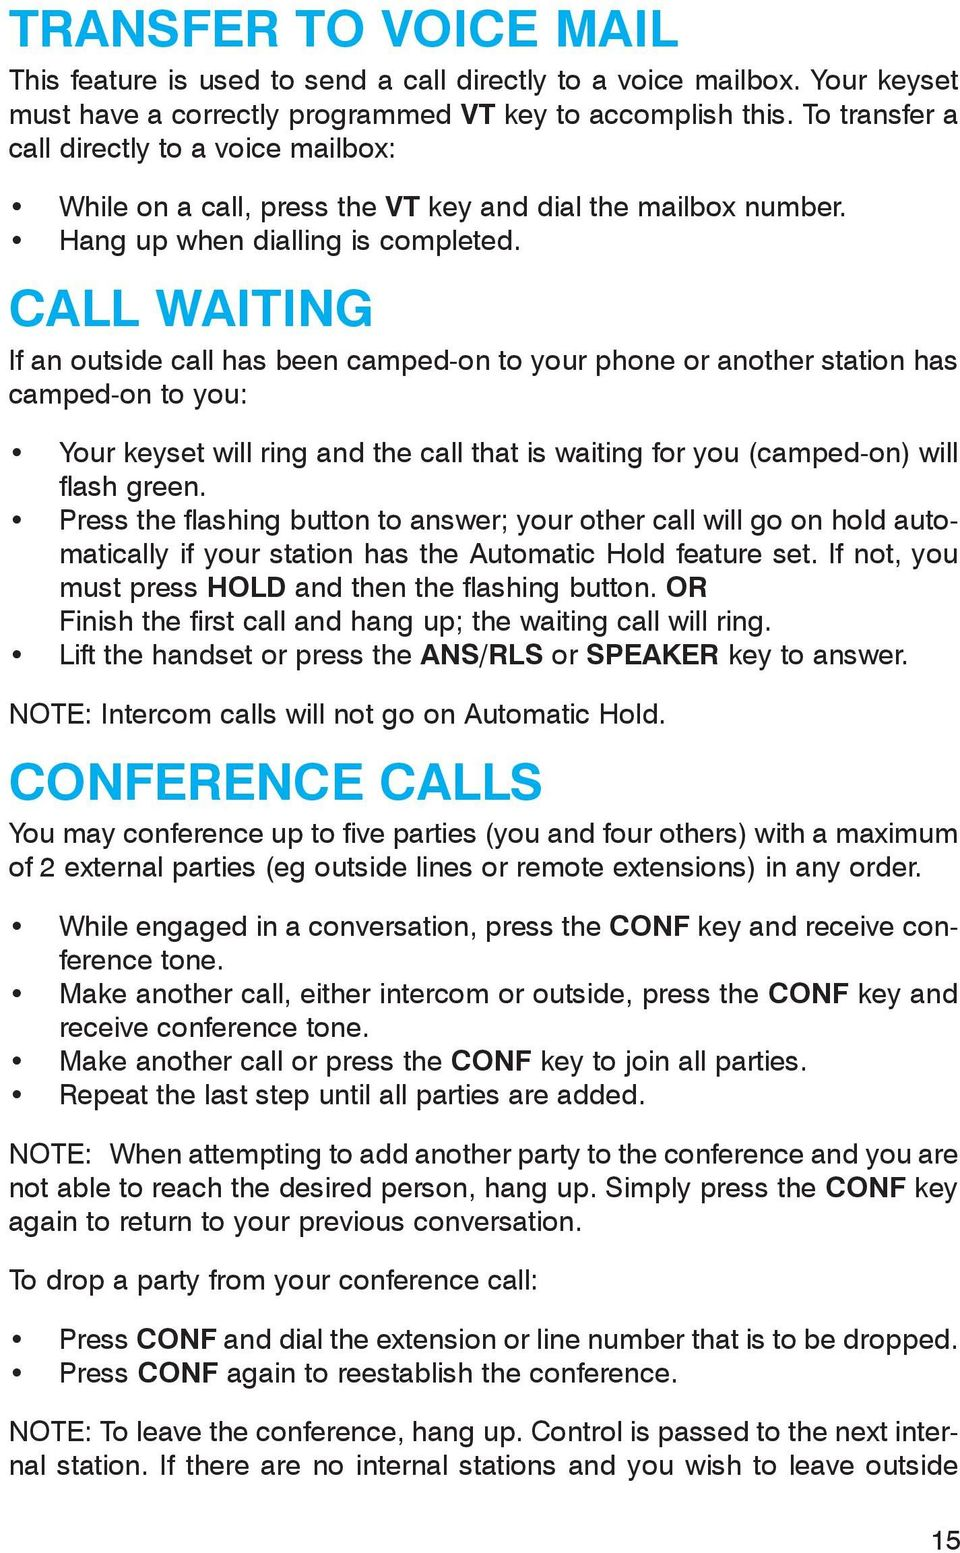 CALL WAITING If an outside call has been camped-on to your phone or another station has camped-on to you: Your keyset will ring and the call that is waiting for you (camped-on) will flash green.